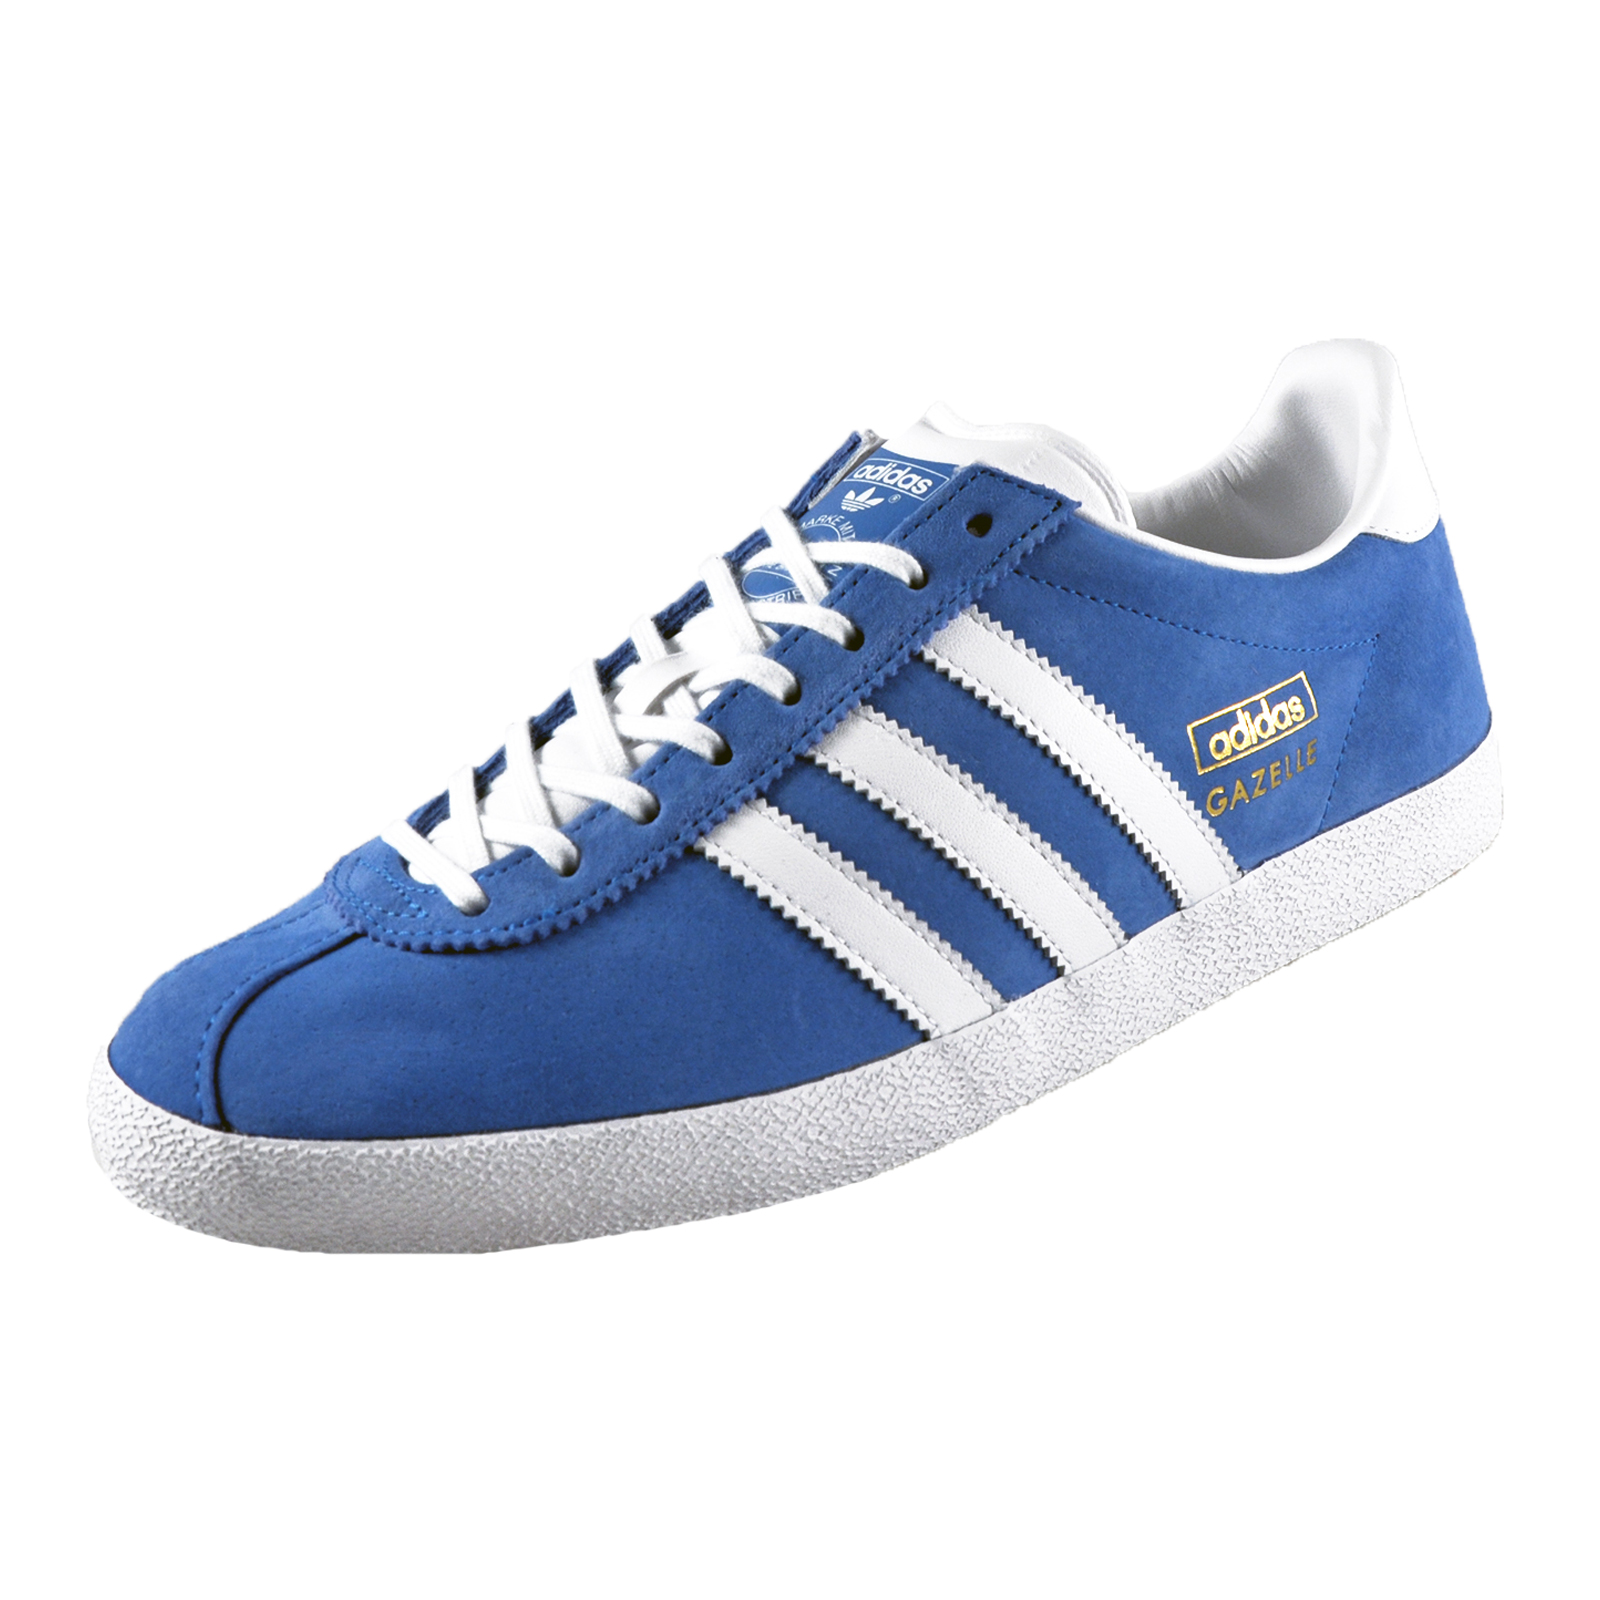 Men's Shoes Buy One Get One Free Athletic Shoes Dedicated Mens Adidas Originals Gazelle Og Leather Trainers Size 12